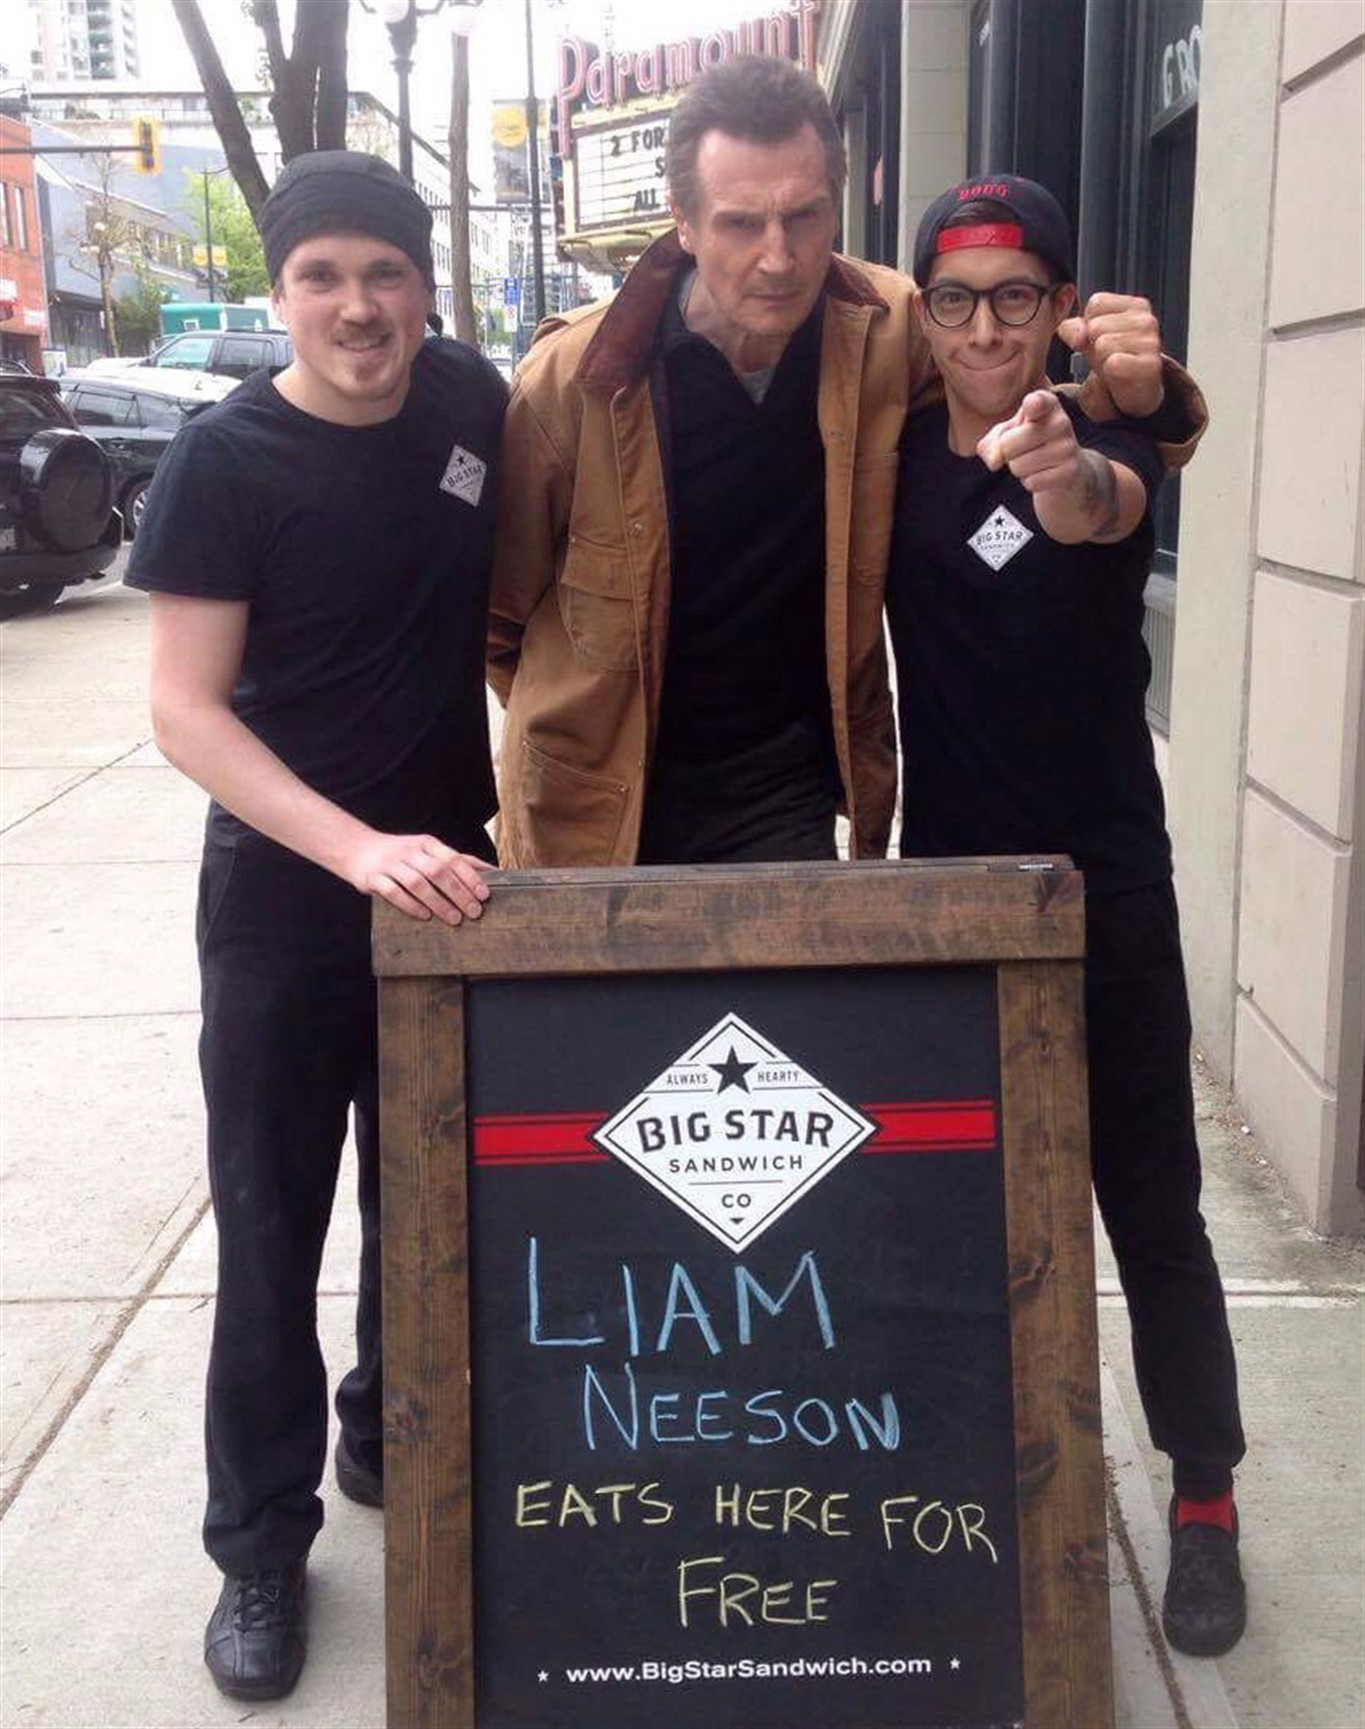 Vancouver Restaurant Advertised Free Food for Liam Neeson, So He Showed Up